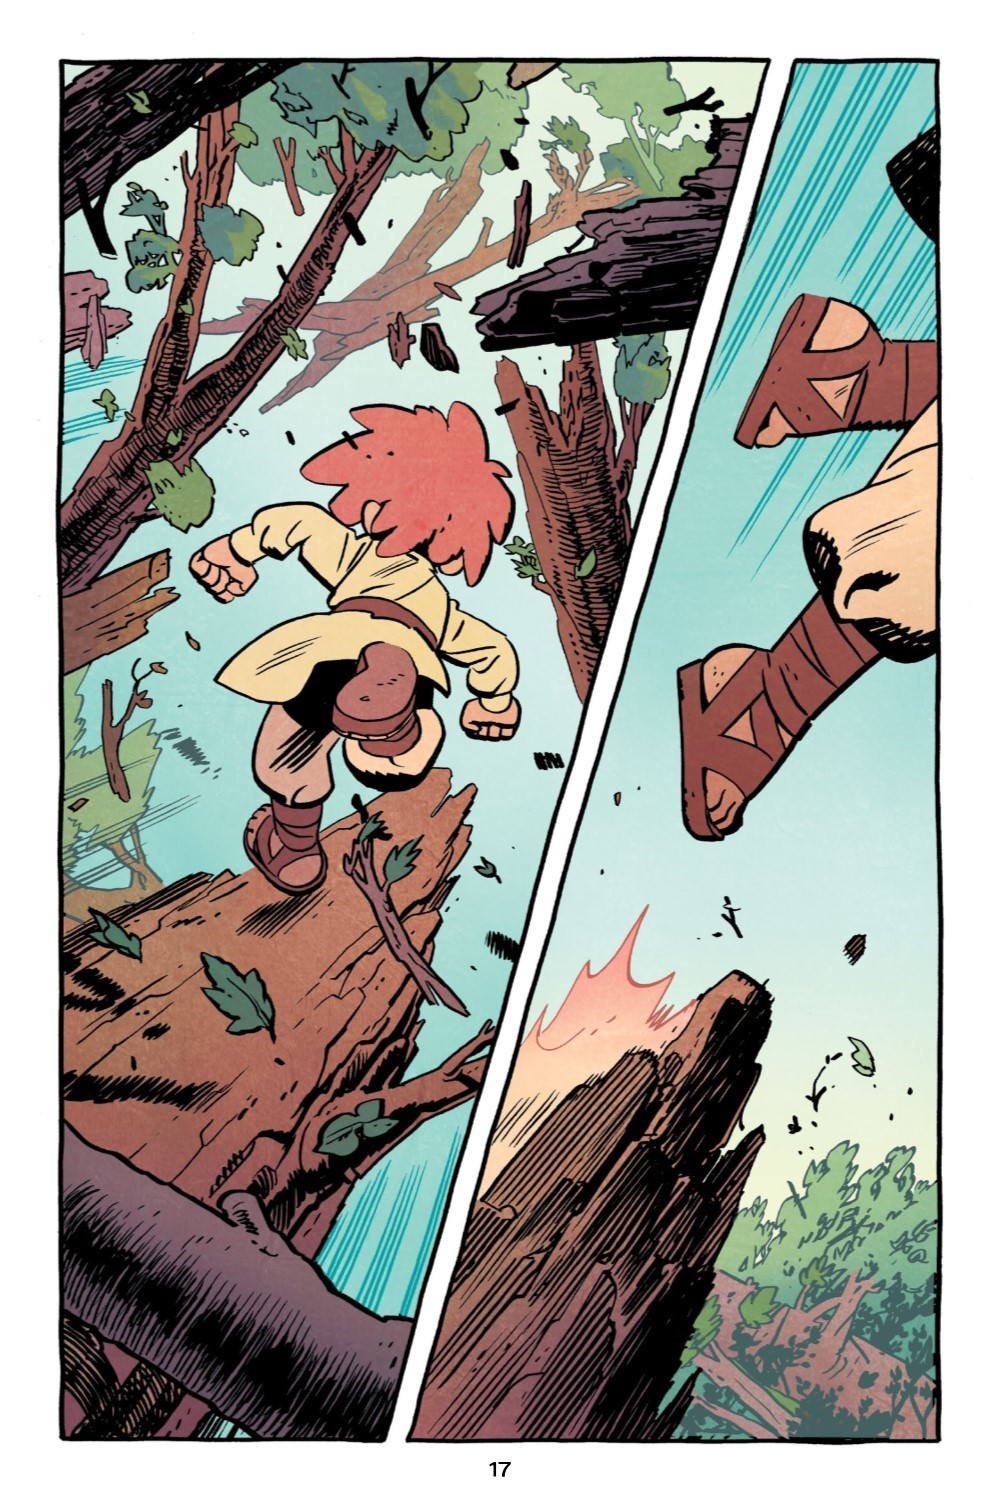 JONNA-V1-REFERENCE-018 ComicList Previews: JONNA AND THE UNPOSSIBLE MONSTER VOLUME 1 TP